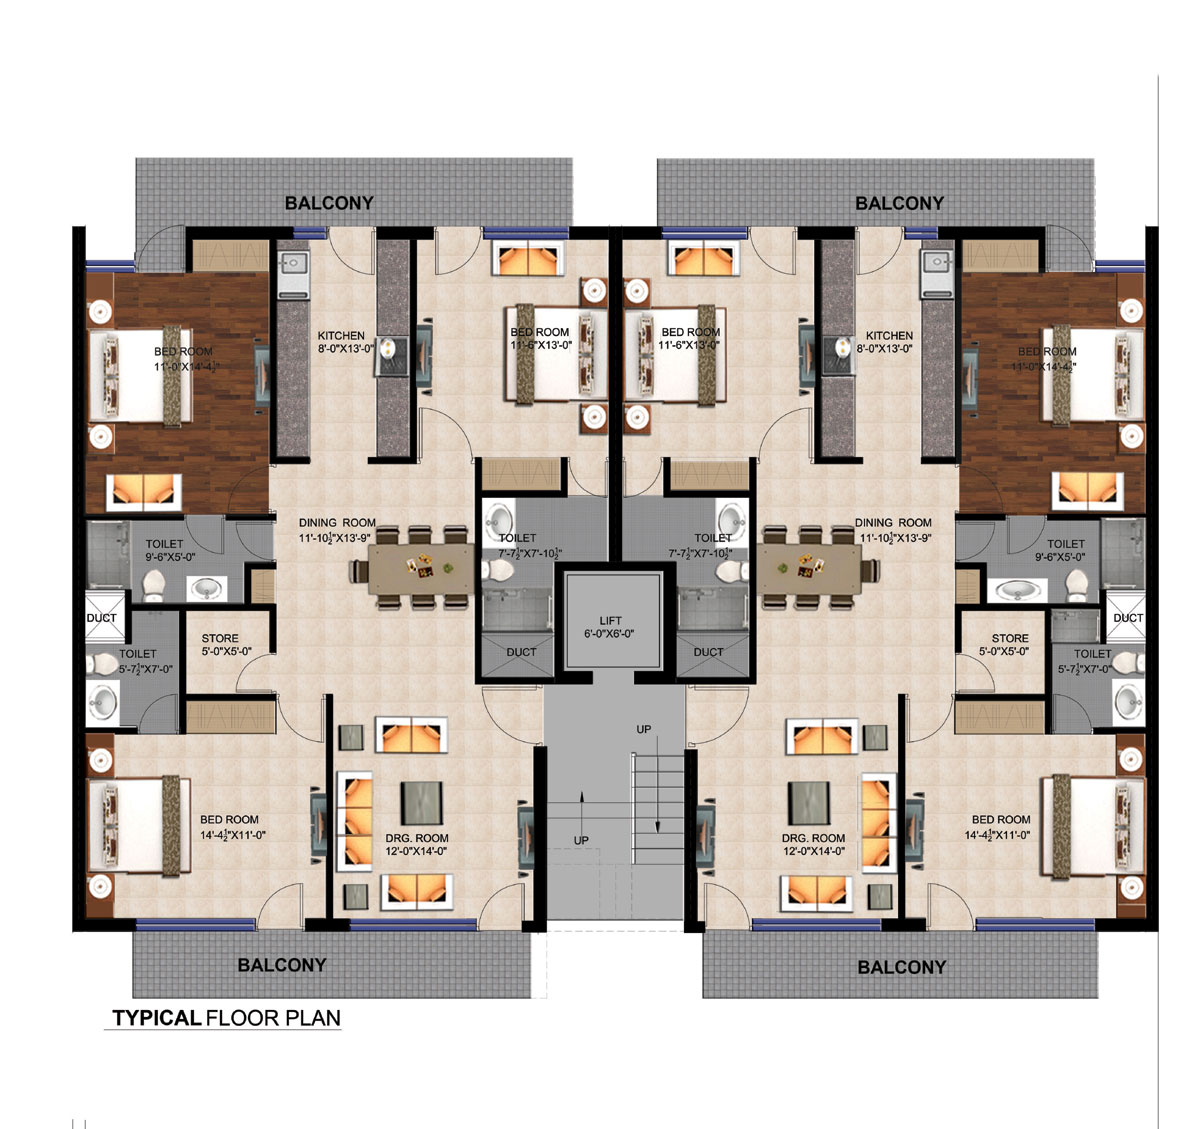 PALM APARTMENTS, Manohar Singh & Co. Independent Floors In